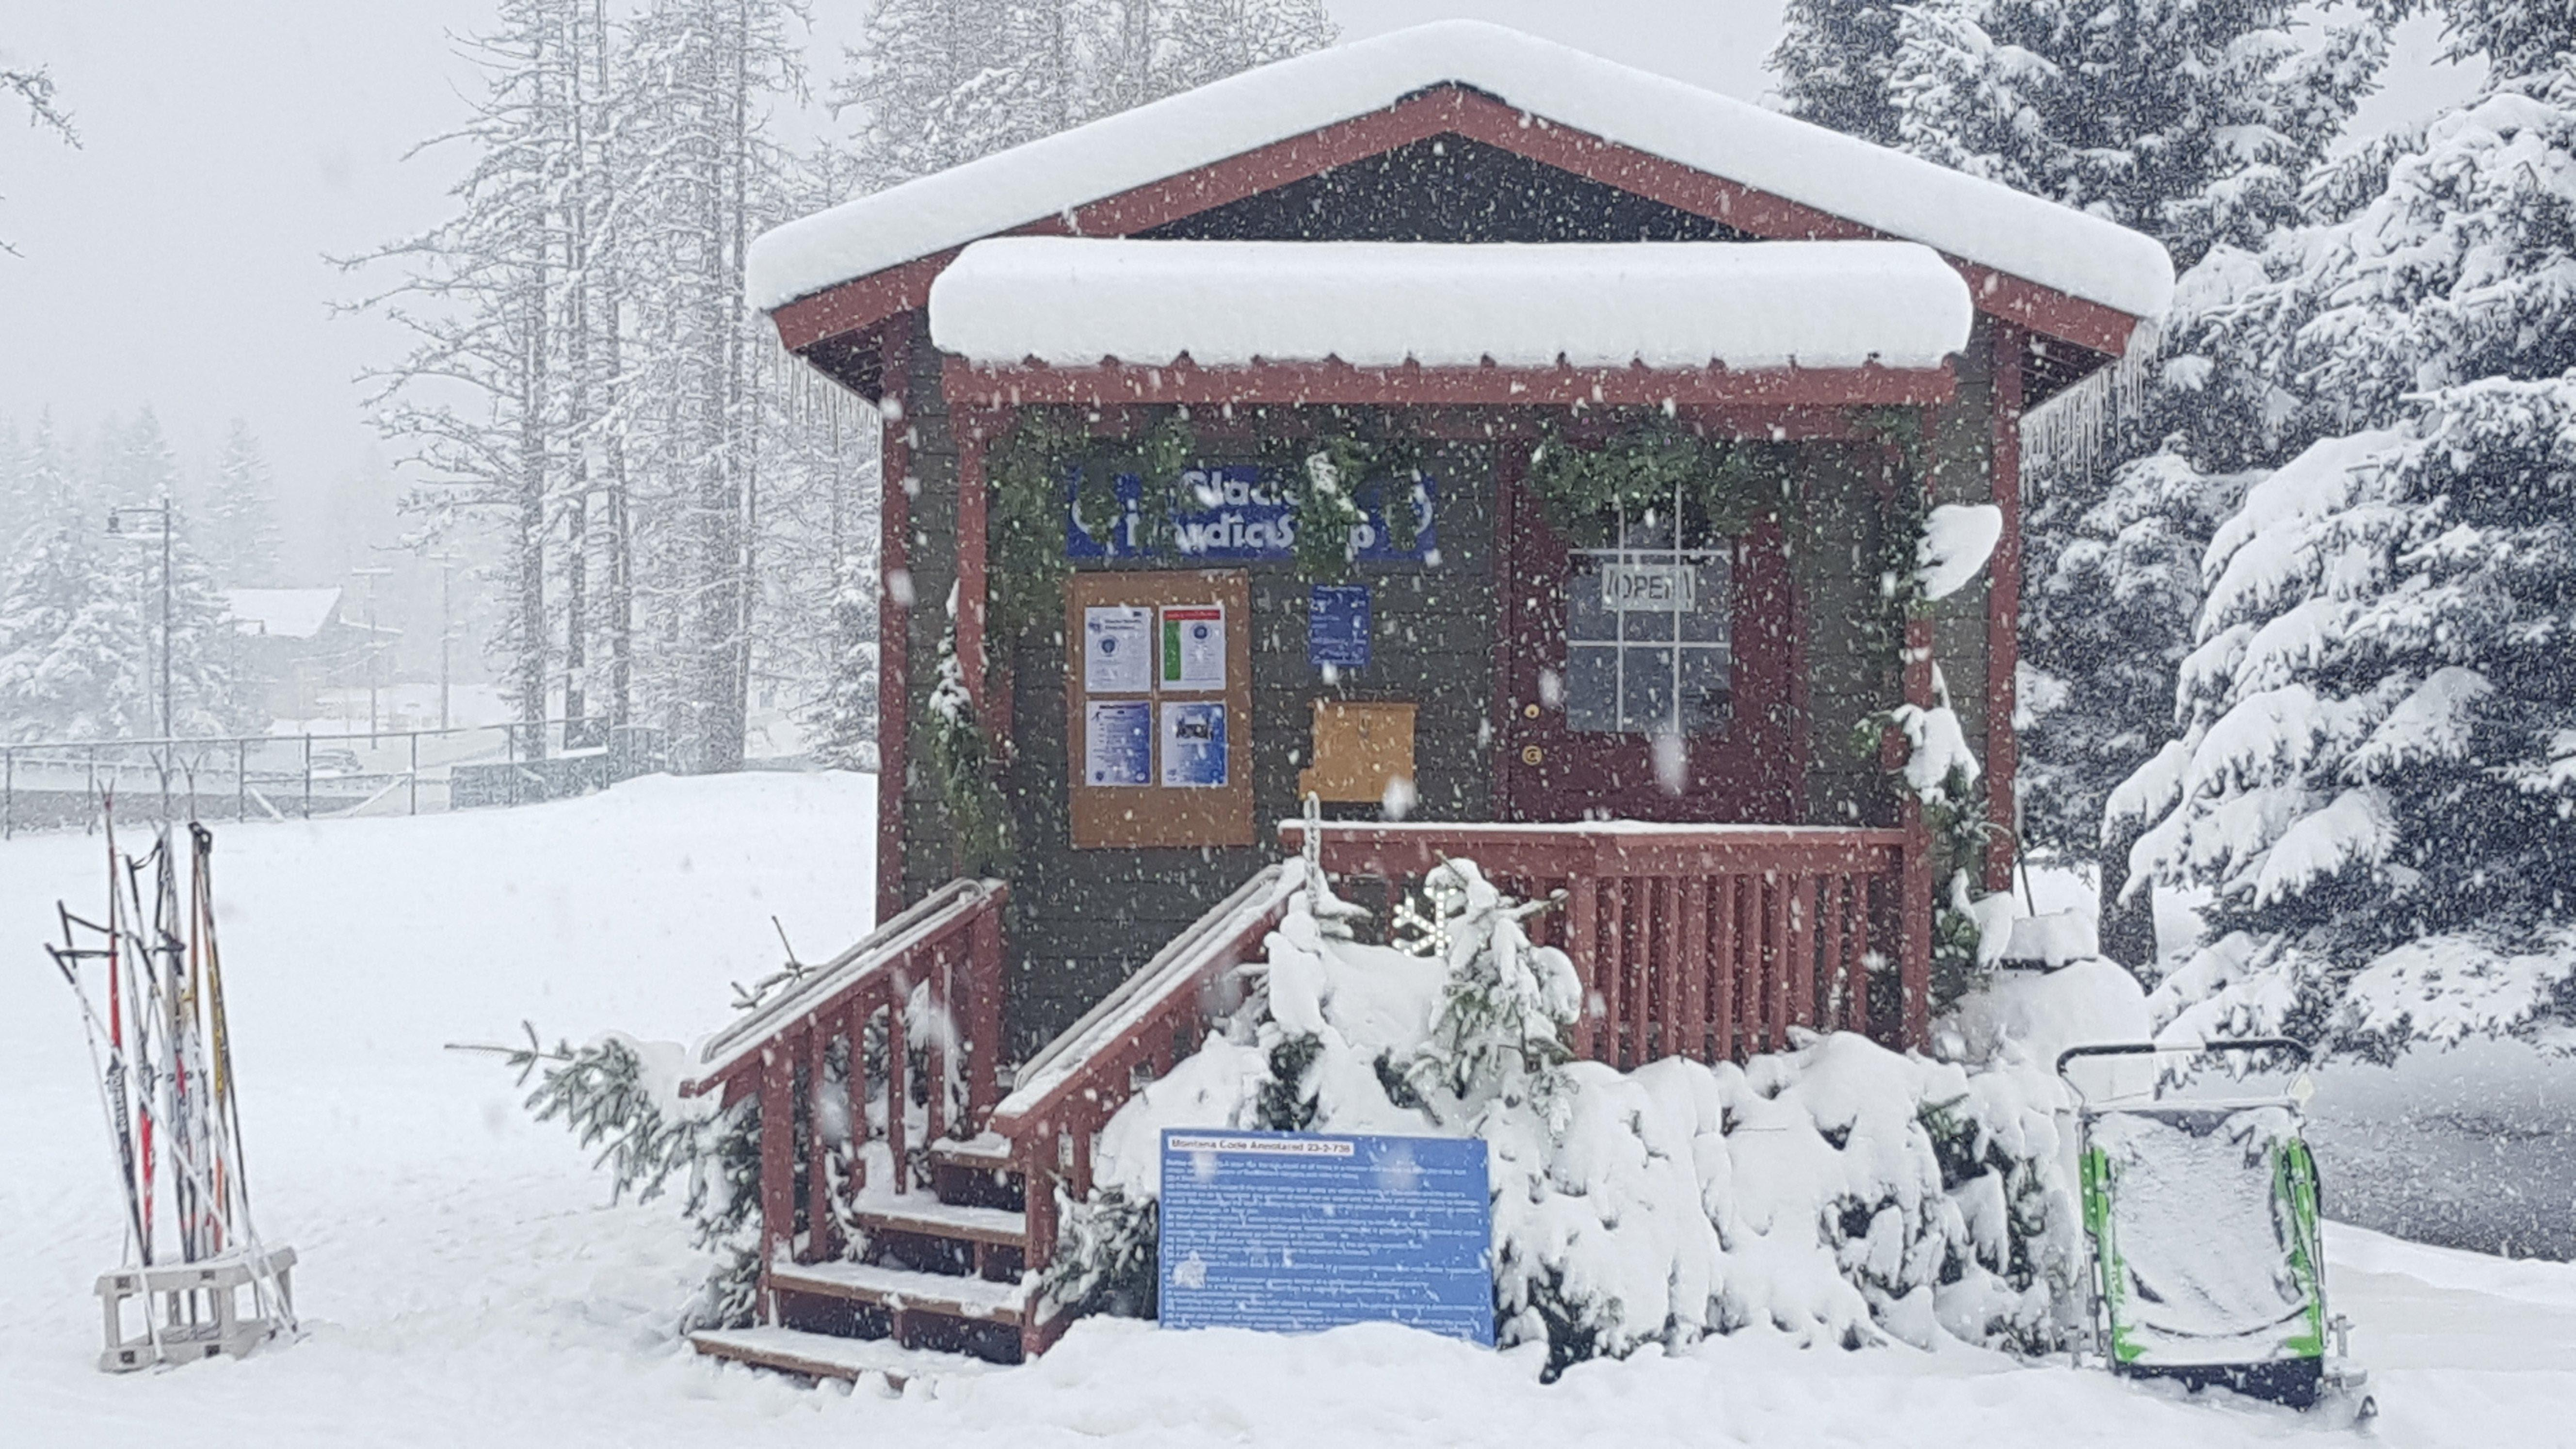 Glacier Nordic Shop at the Whitefish Lake Golf Course